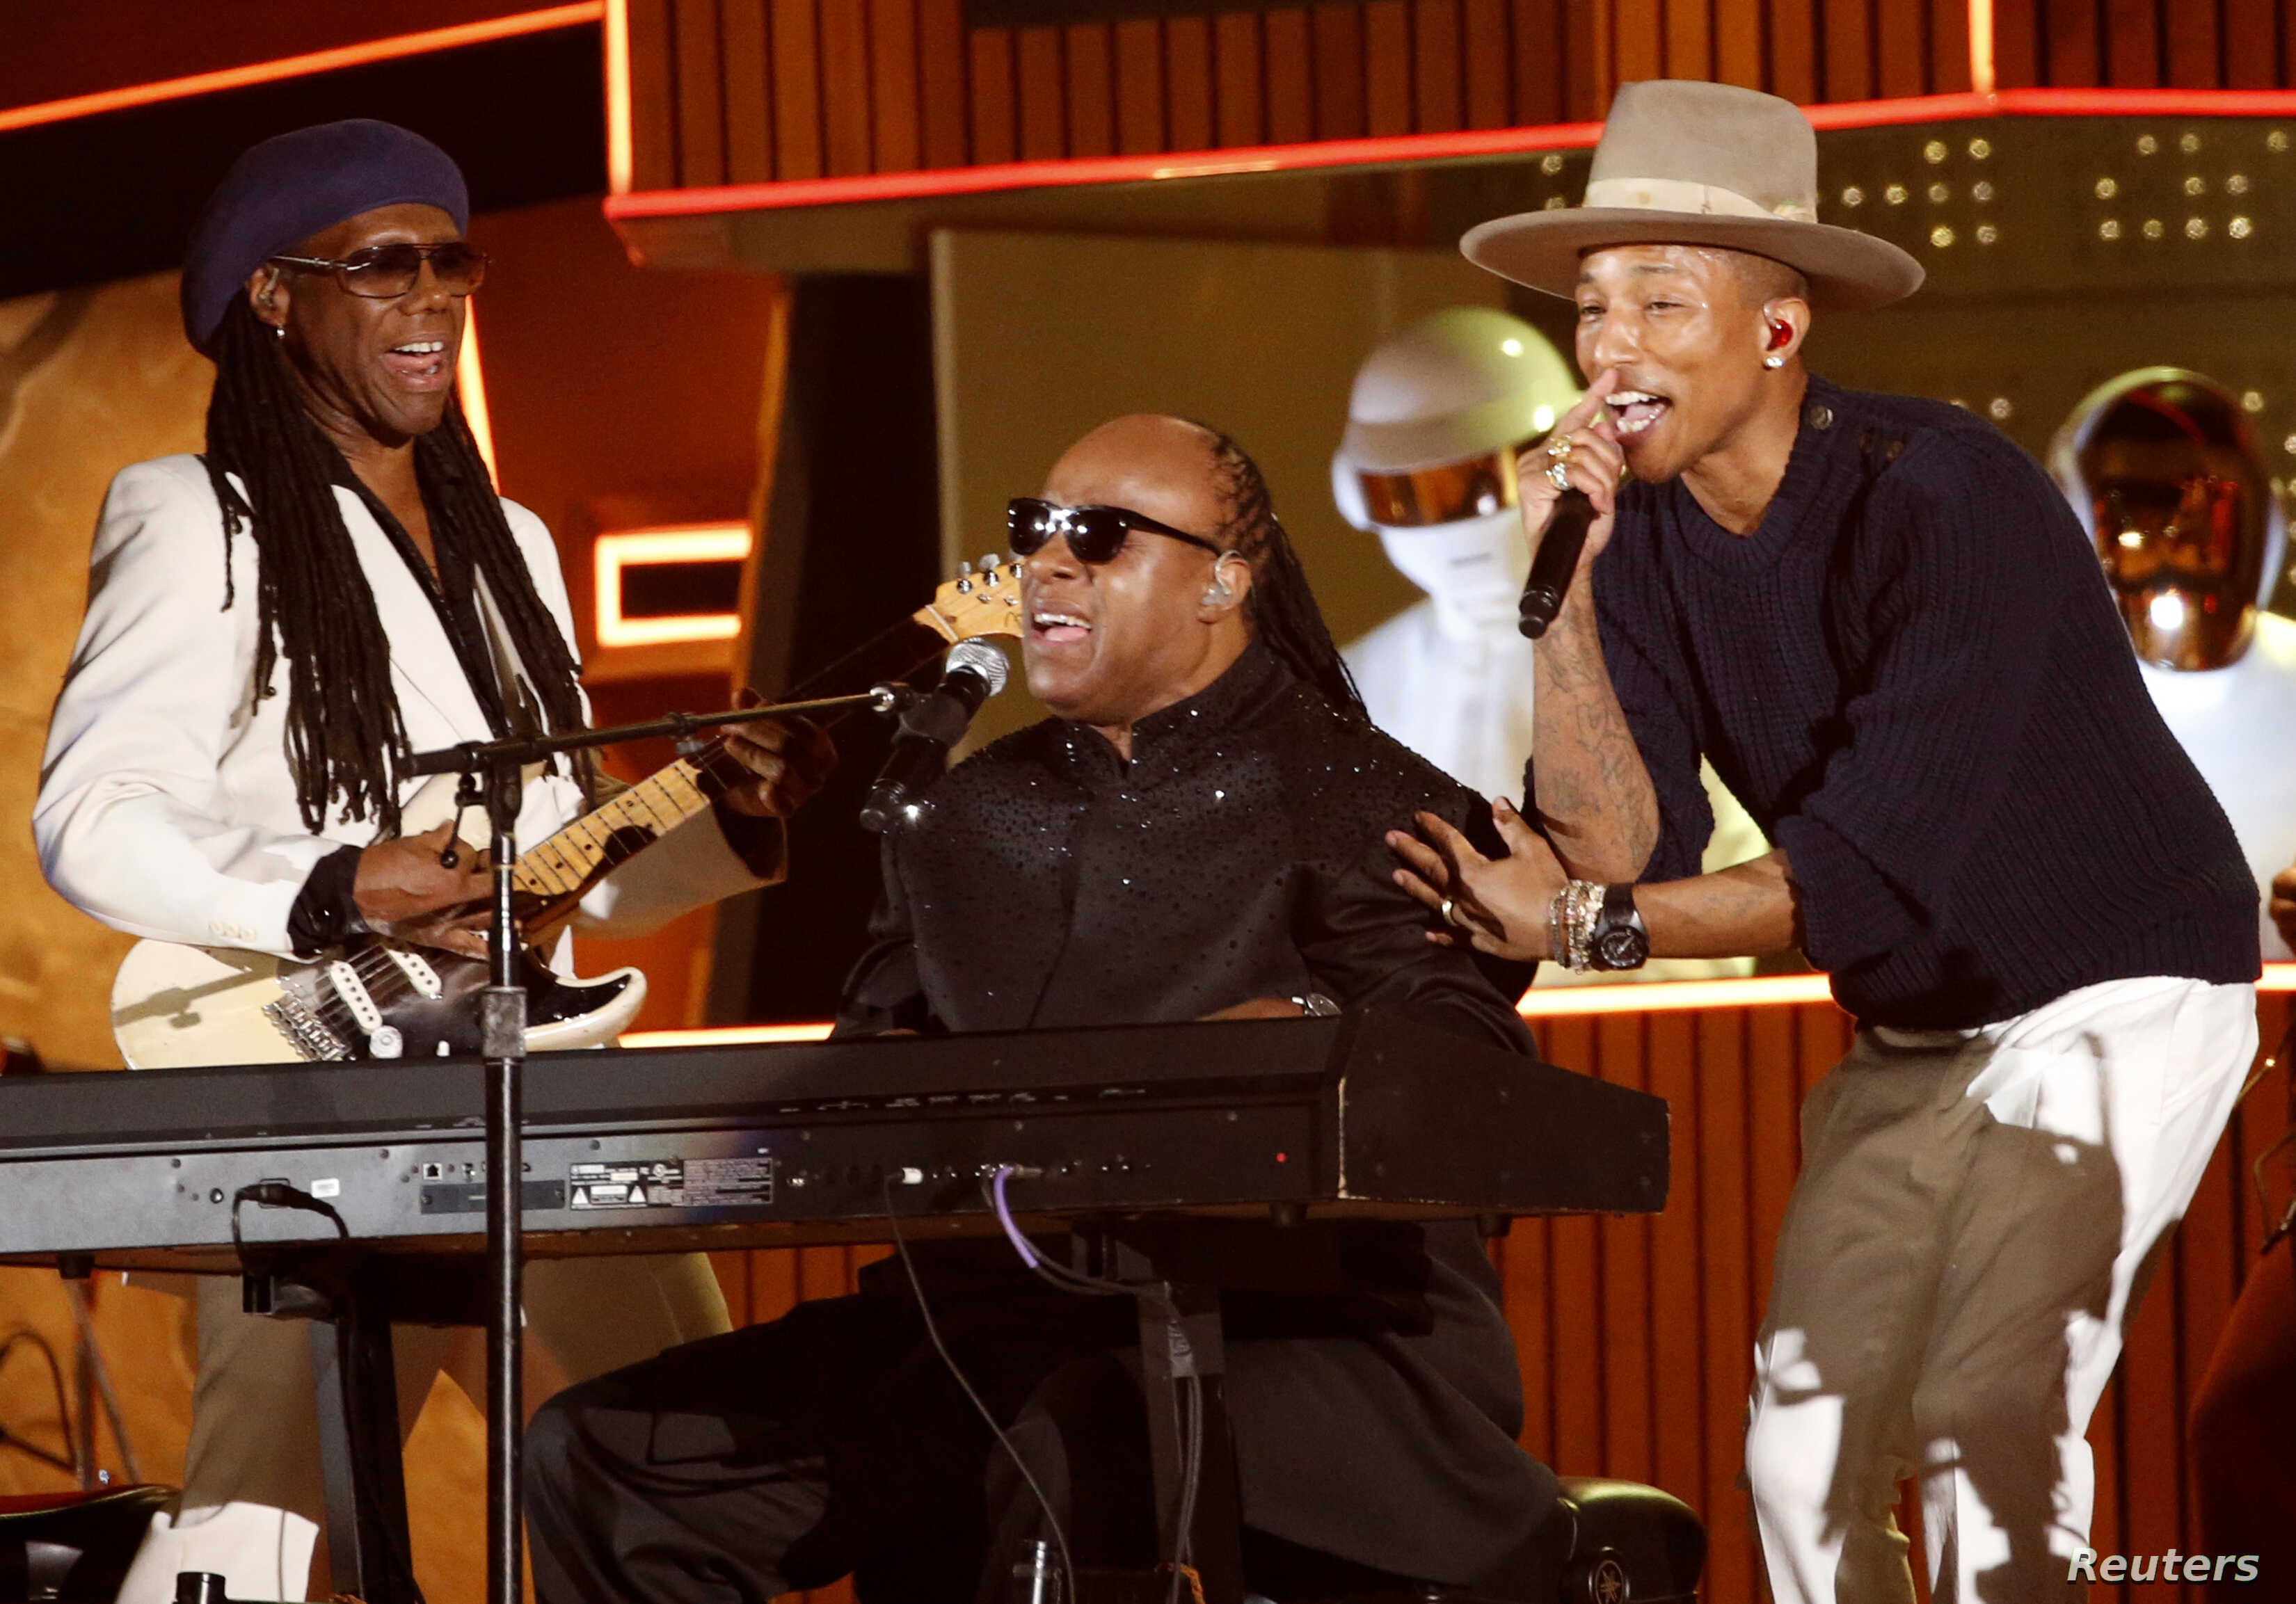 """Stevie Wonder (C) performs the Daft Punk's song """"Get Lucky"""" with Pharrell Williams and Nile Rodgers (L) at the 56th annual Grammy Awards in Los Angeles, Jan. 26, 2014"""